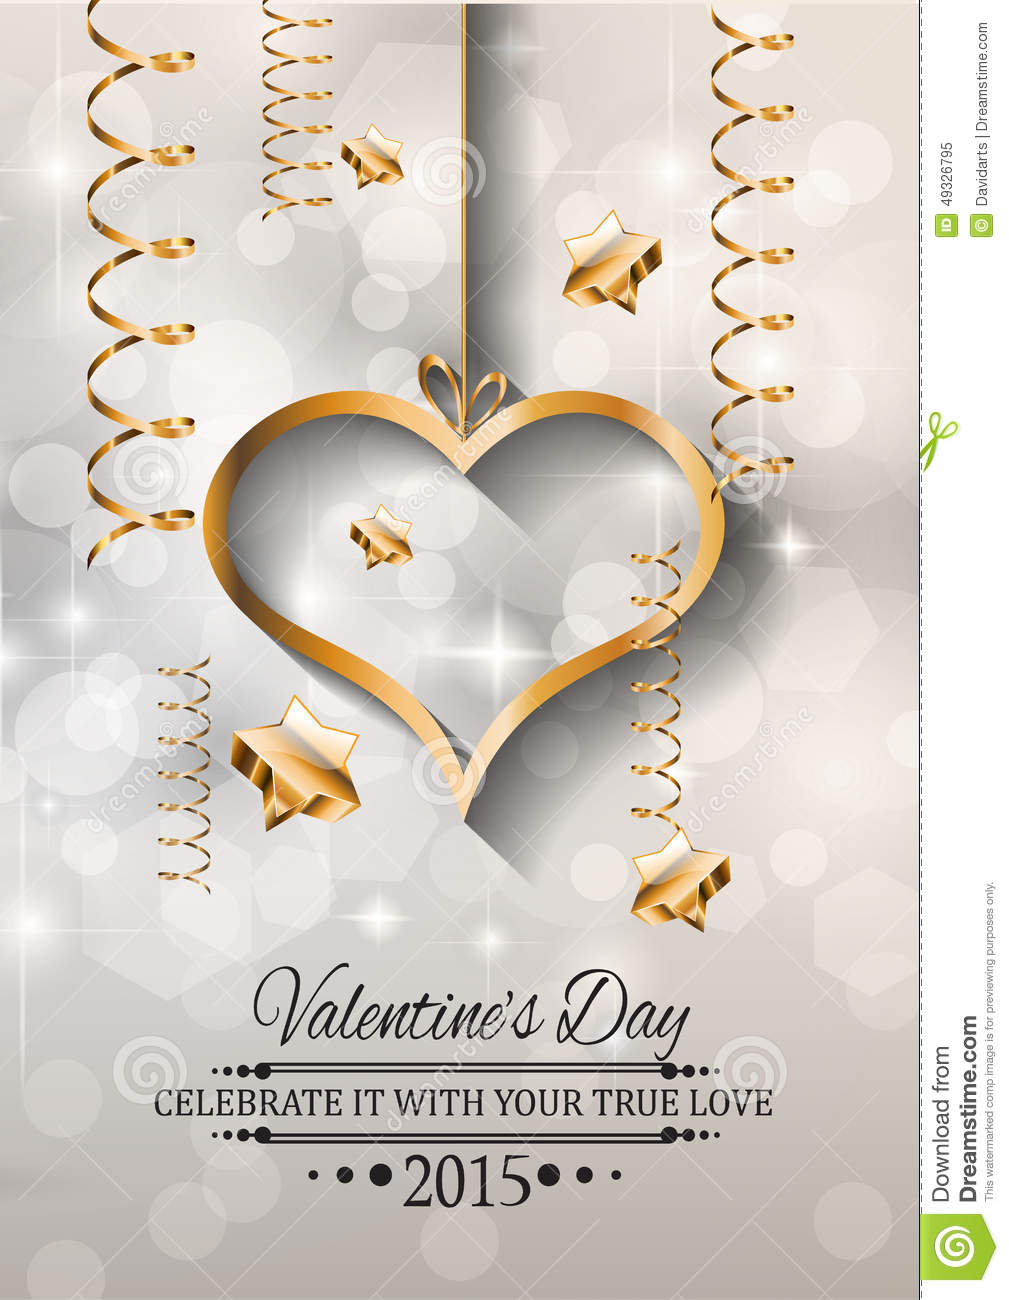 Valentines Day Background For Dinner Invitations Stock Vector